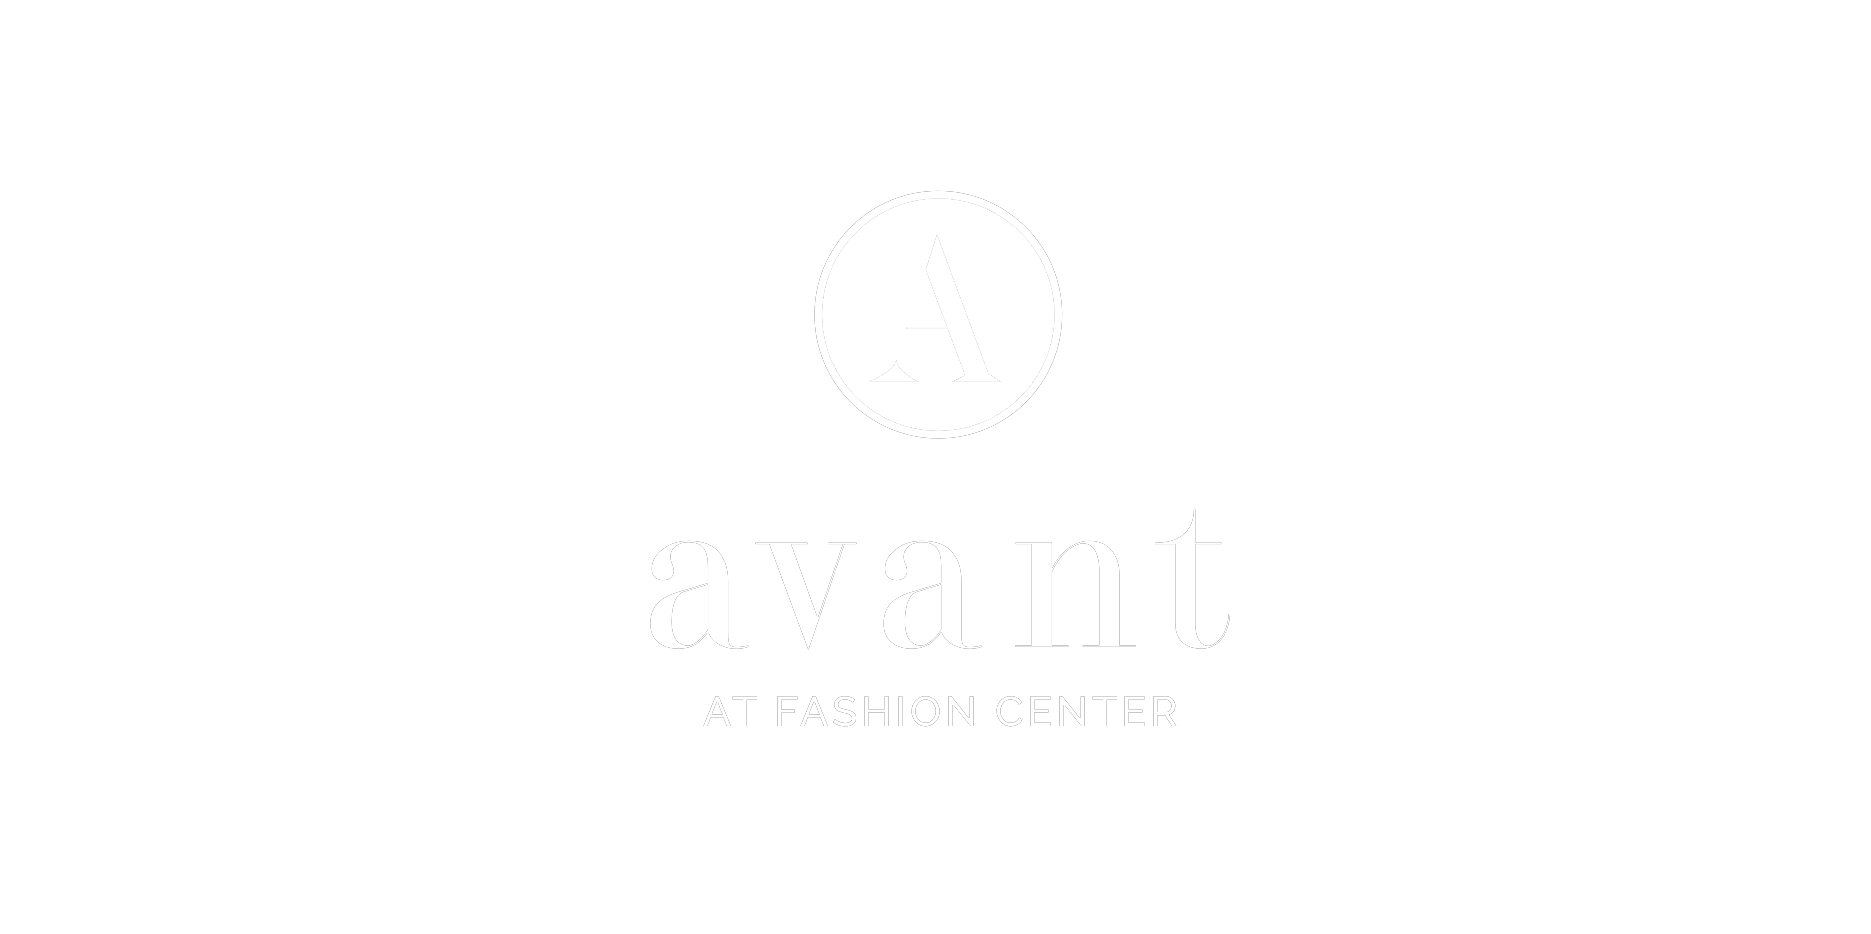 Avant at Fashion Center logo